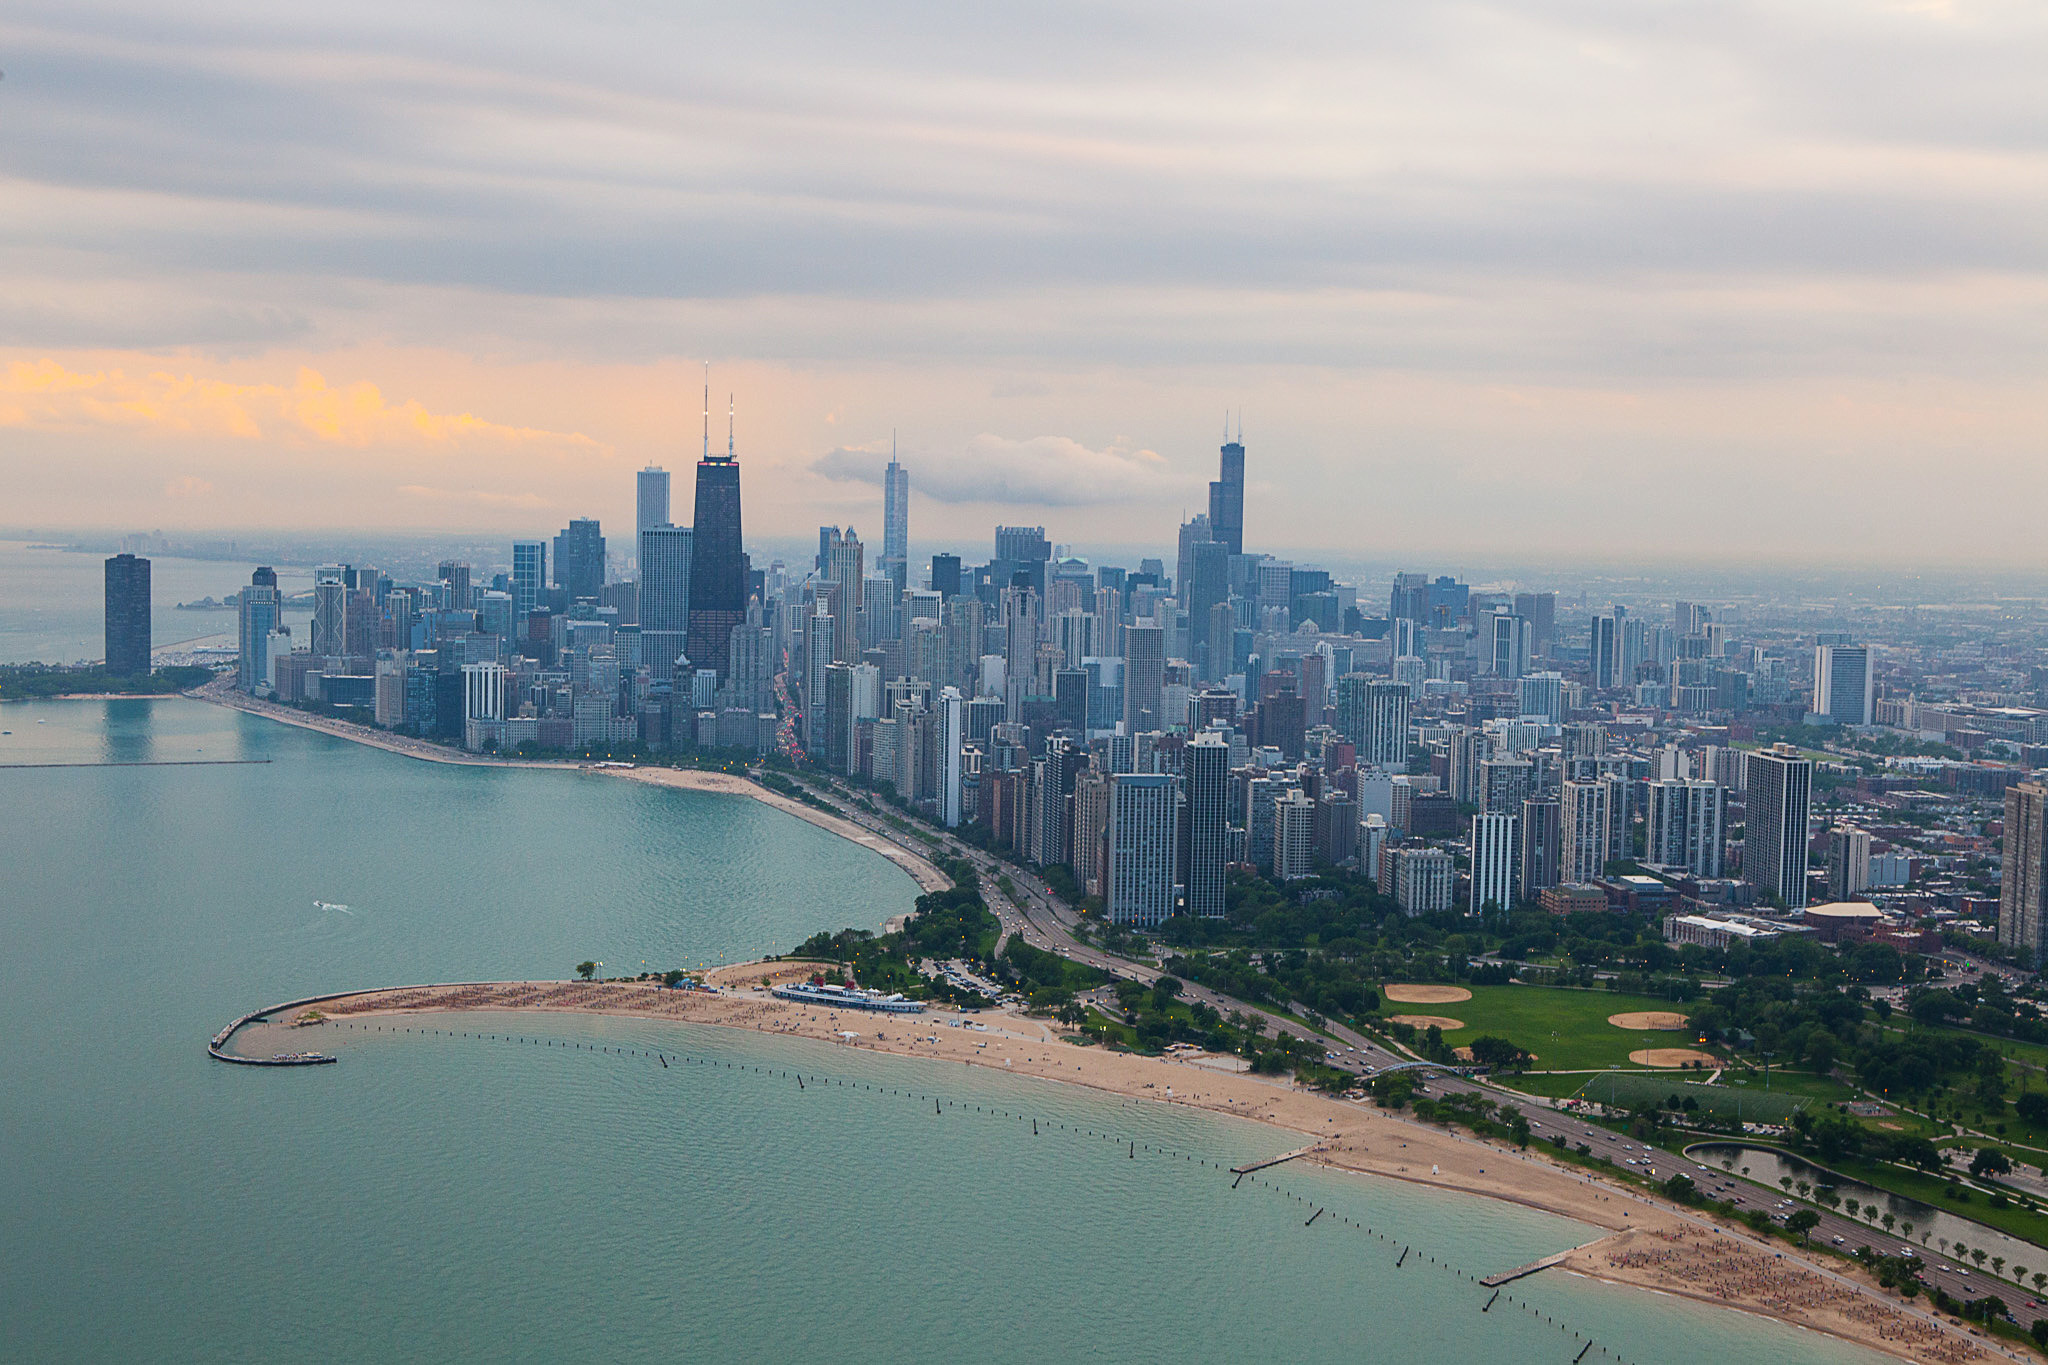 A helicopter tour of the Chicago skyline